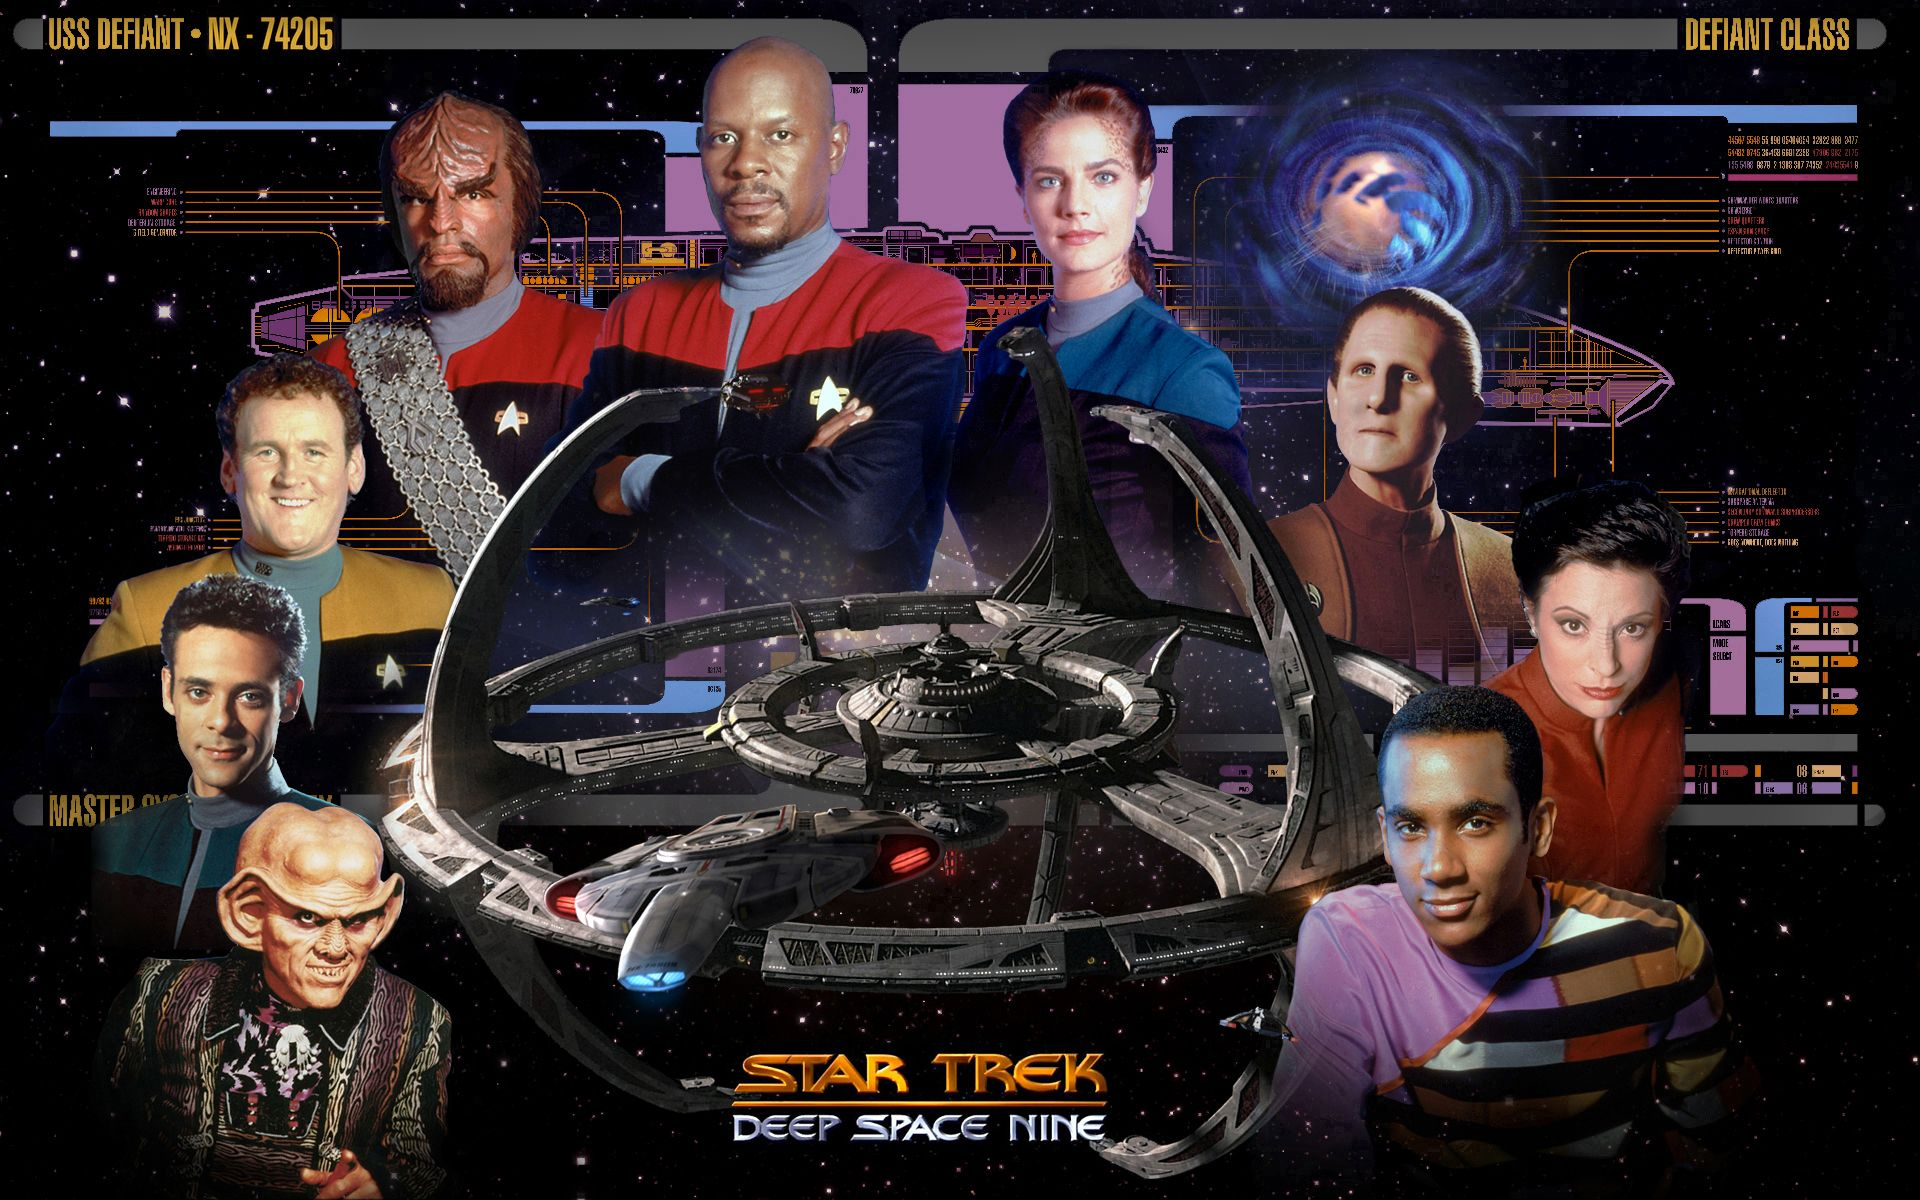 My-Top-5-Favorite-TV-Shows-Top-5-Favorite-Movies Star Trek - Uma jornada além das estrelas - Parte  5